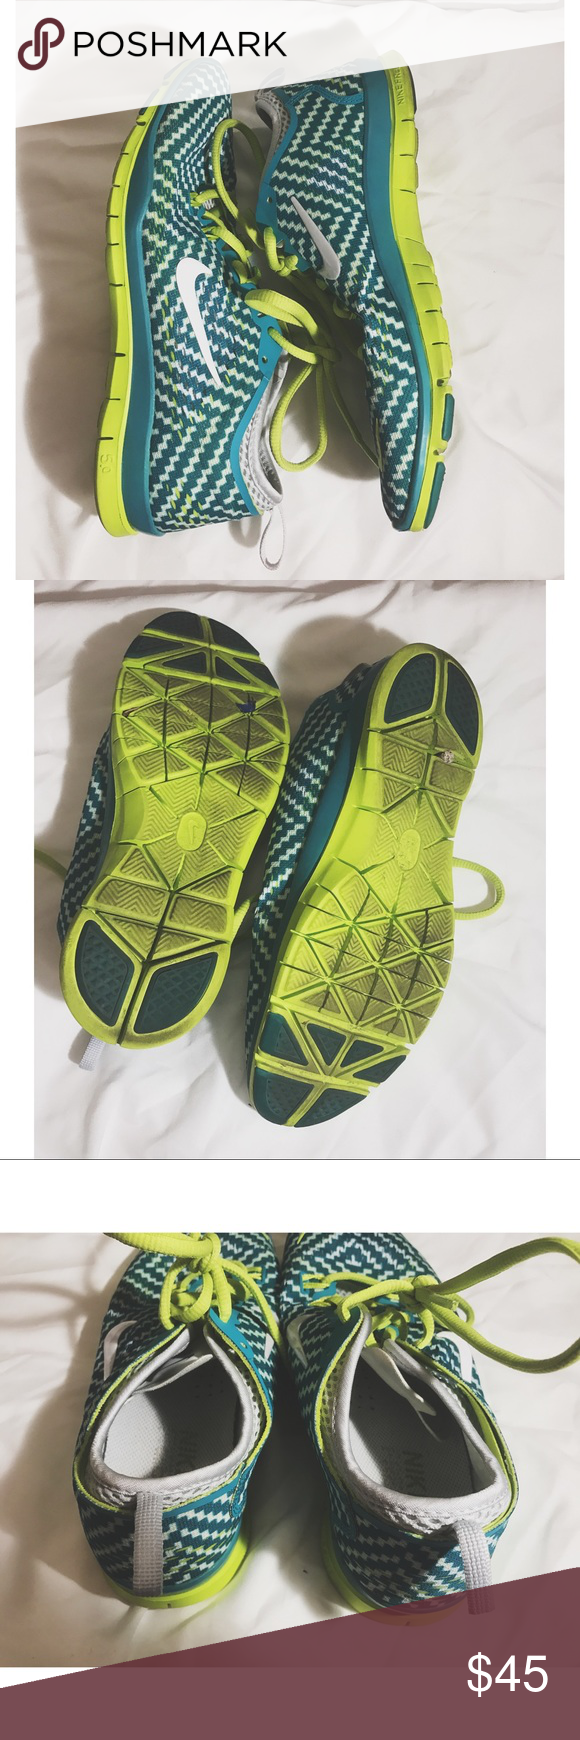 Green and neon green trainer fit 4 Nike free trainer fit 4. They have been worn but still have a lot of life in them. Nike Shoes Athletic Shoes